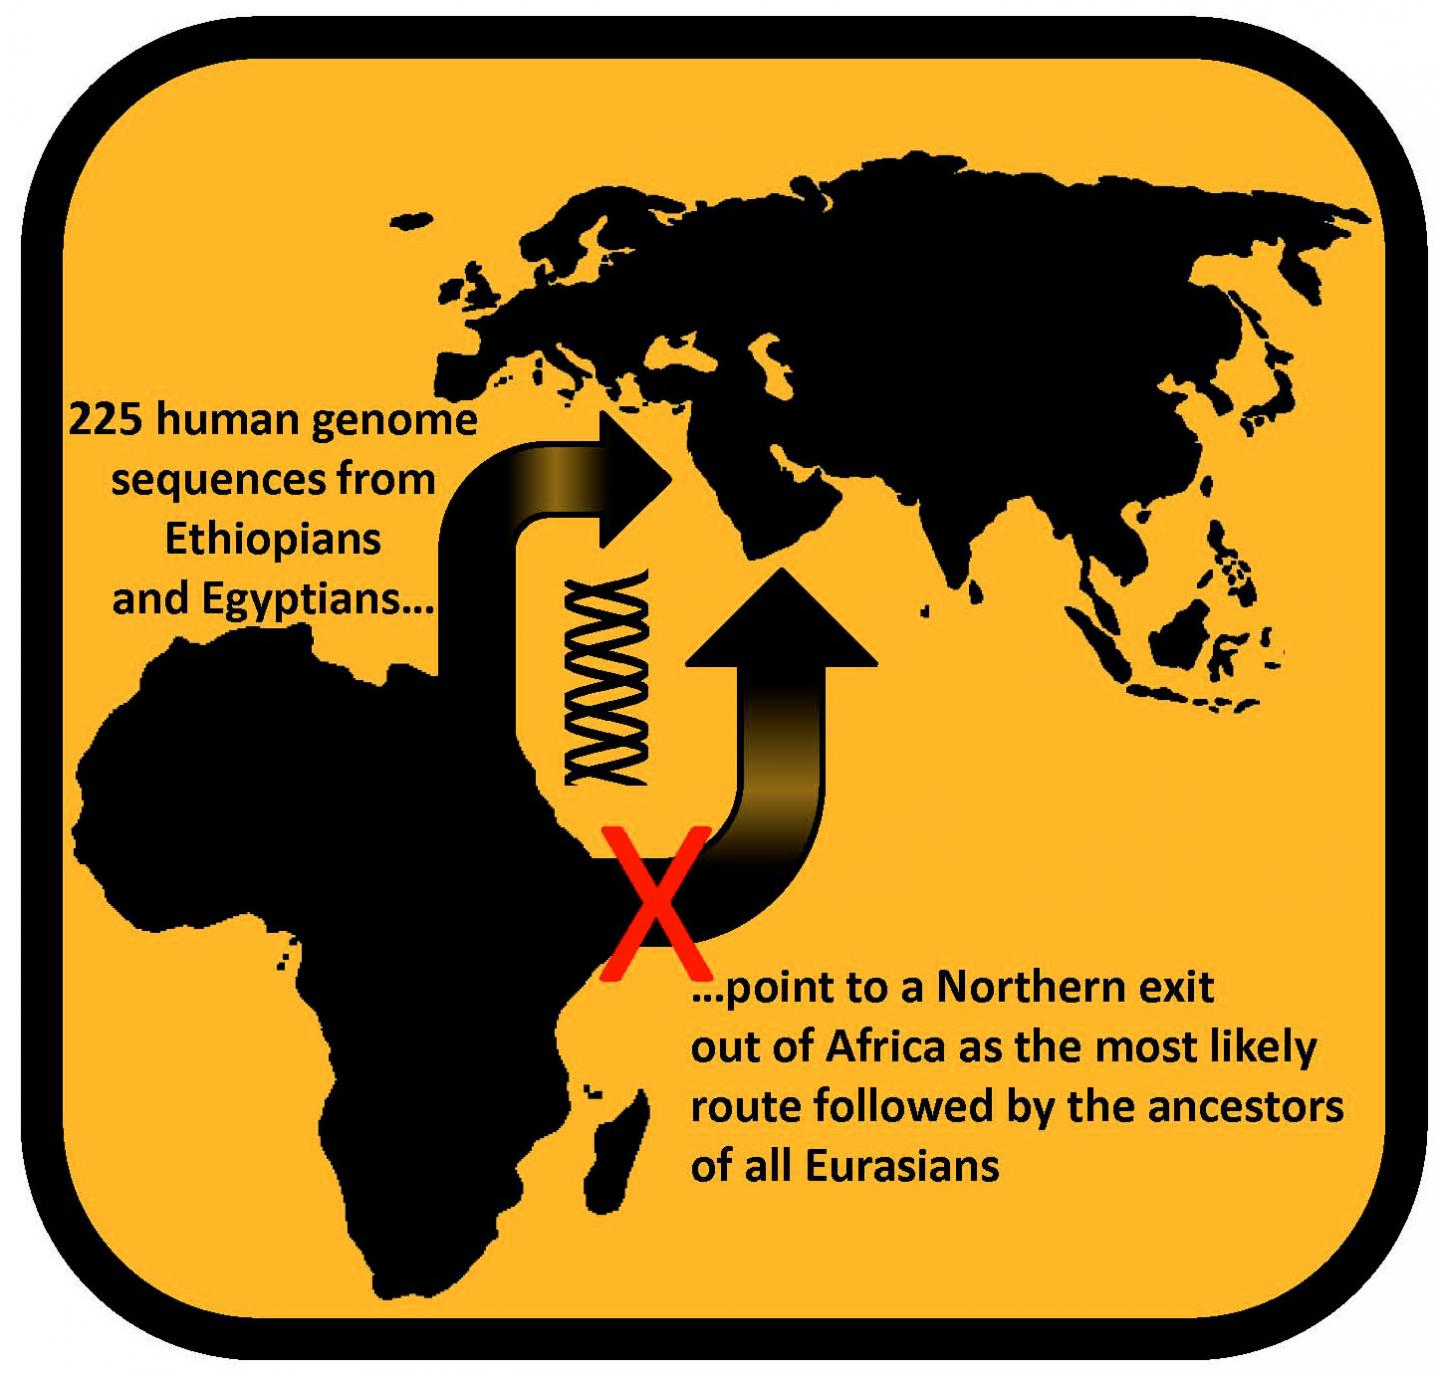 Route out of Africa